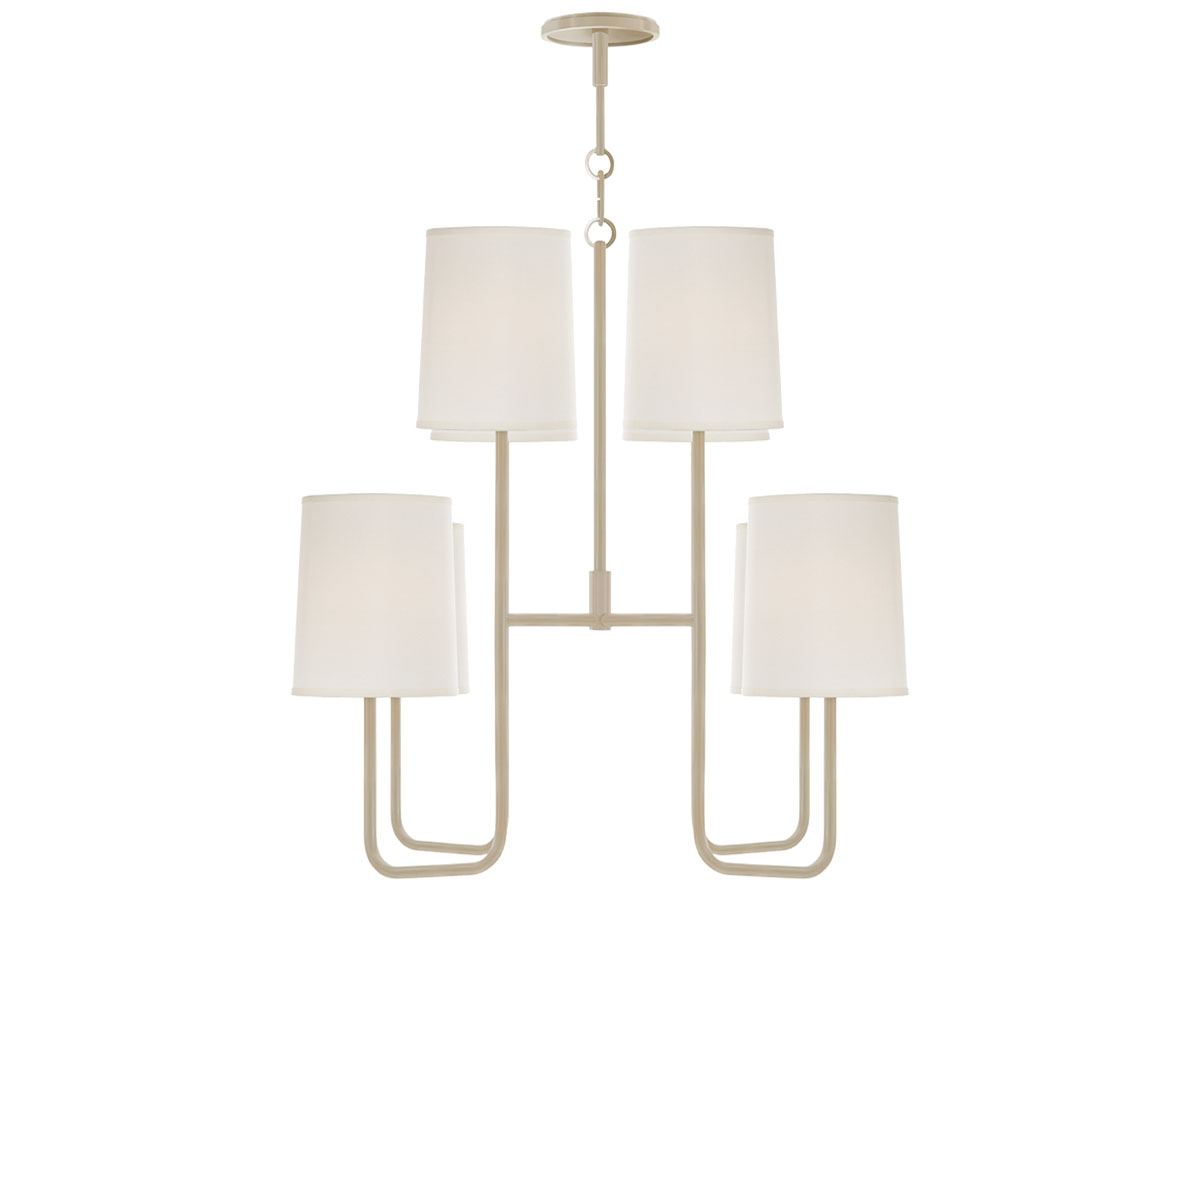 Visual comfort go lightly medium chandelier chandelier neenas visual comfort go lightly medium chandelier chandelier neenas lighting aloadofball Choice Image